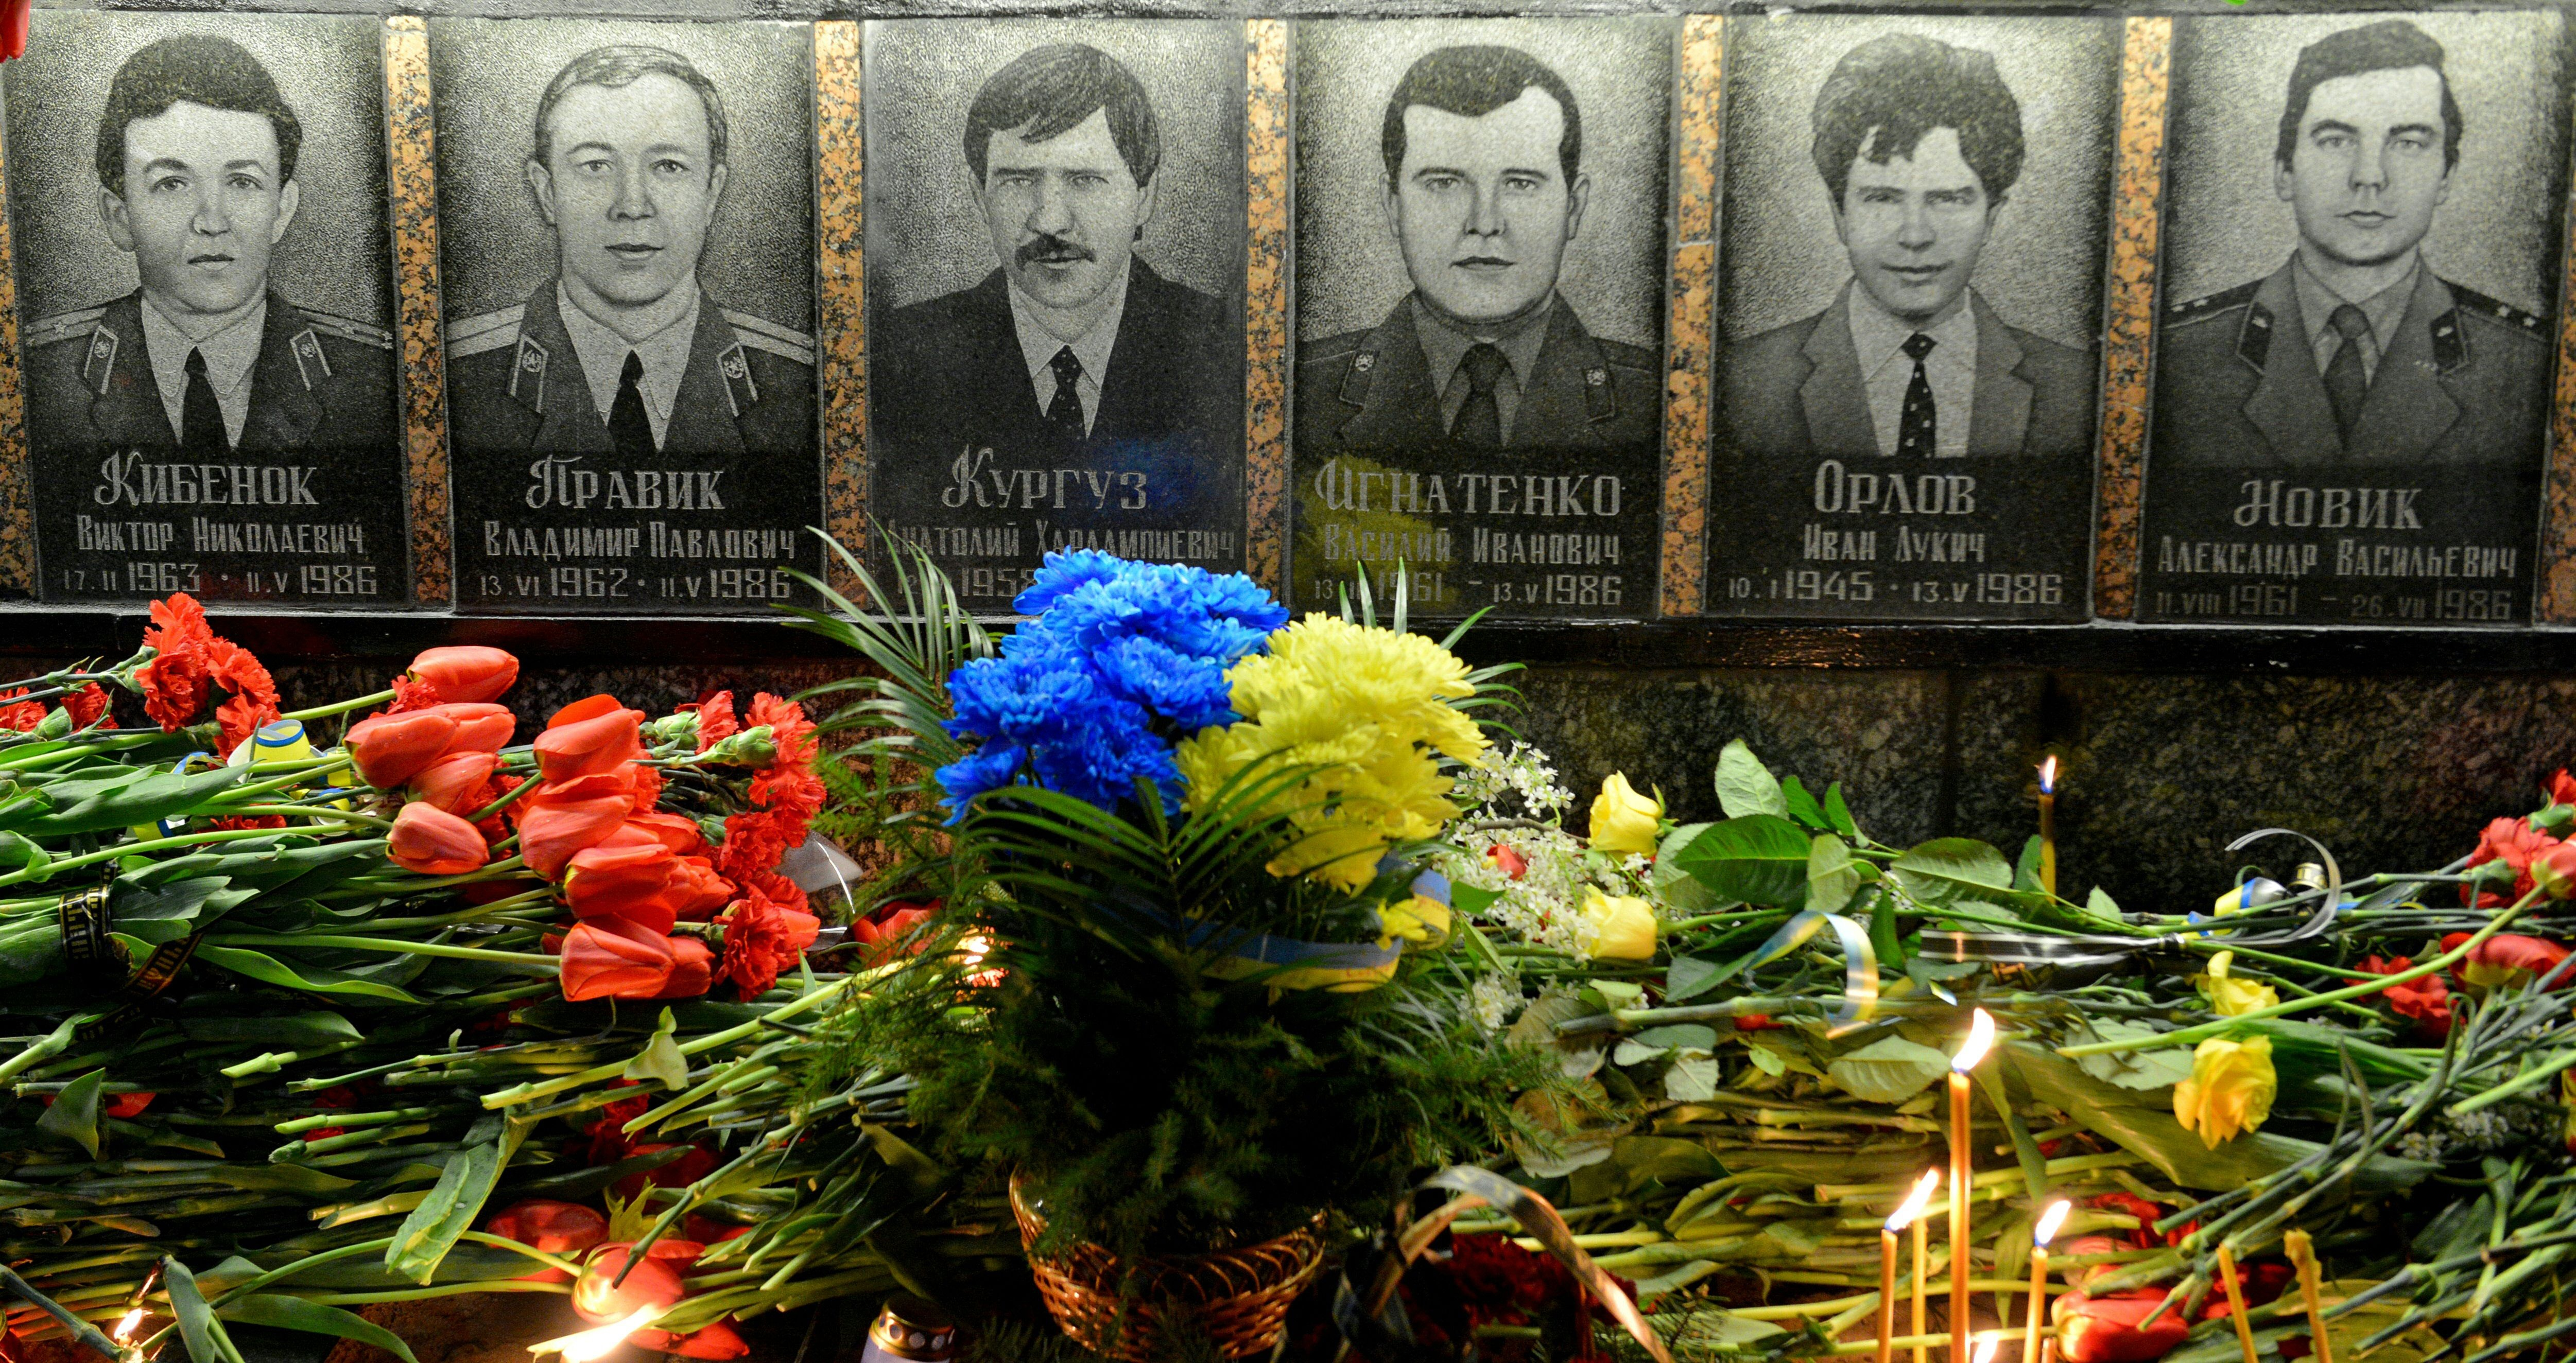 Picture taken early on April 26, 2016 shows flowers and candles in front of portraits at the monument to Chernobyl victims in Slavutich, some 50 kilometres (30 miles) from the accident site, and where many of the power station's personnel used to live, during a memorial ceremony.